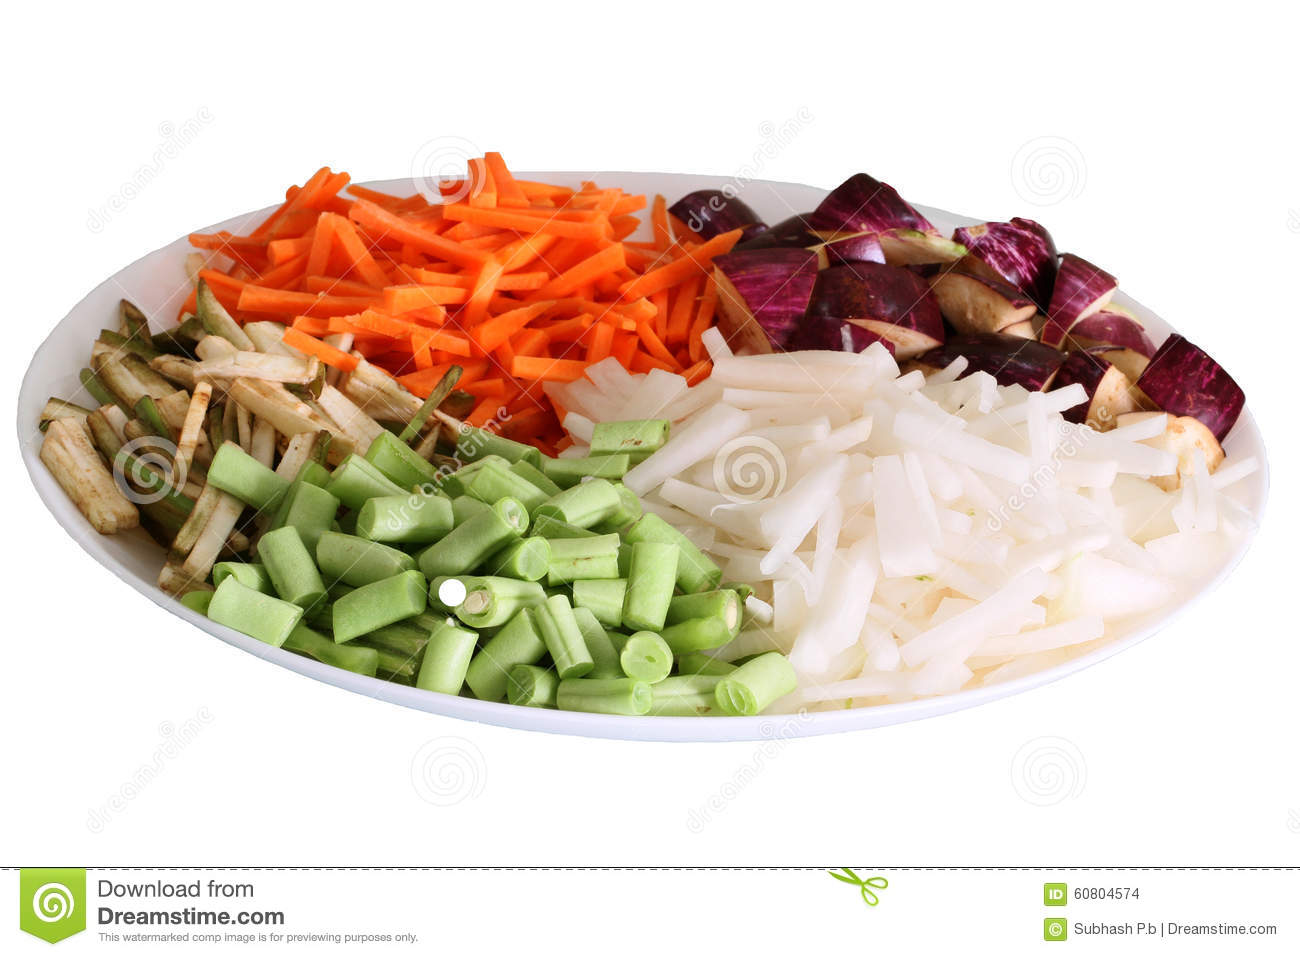 Colorful vegetables arranged in plate with white background